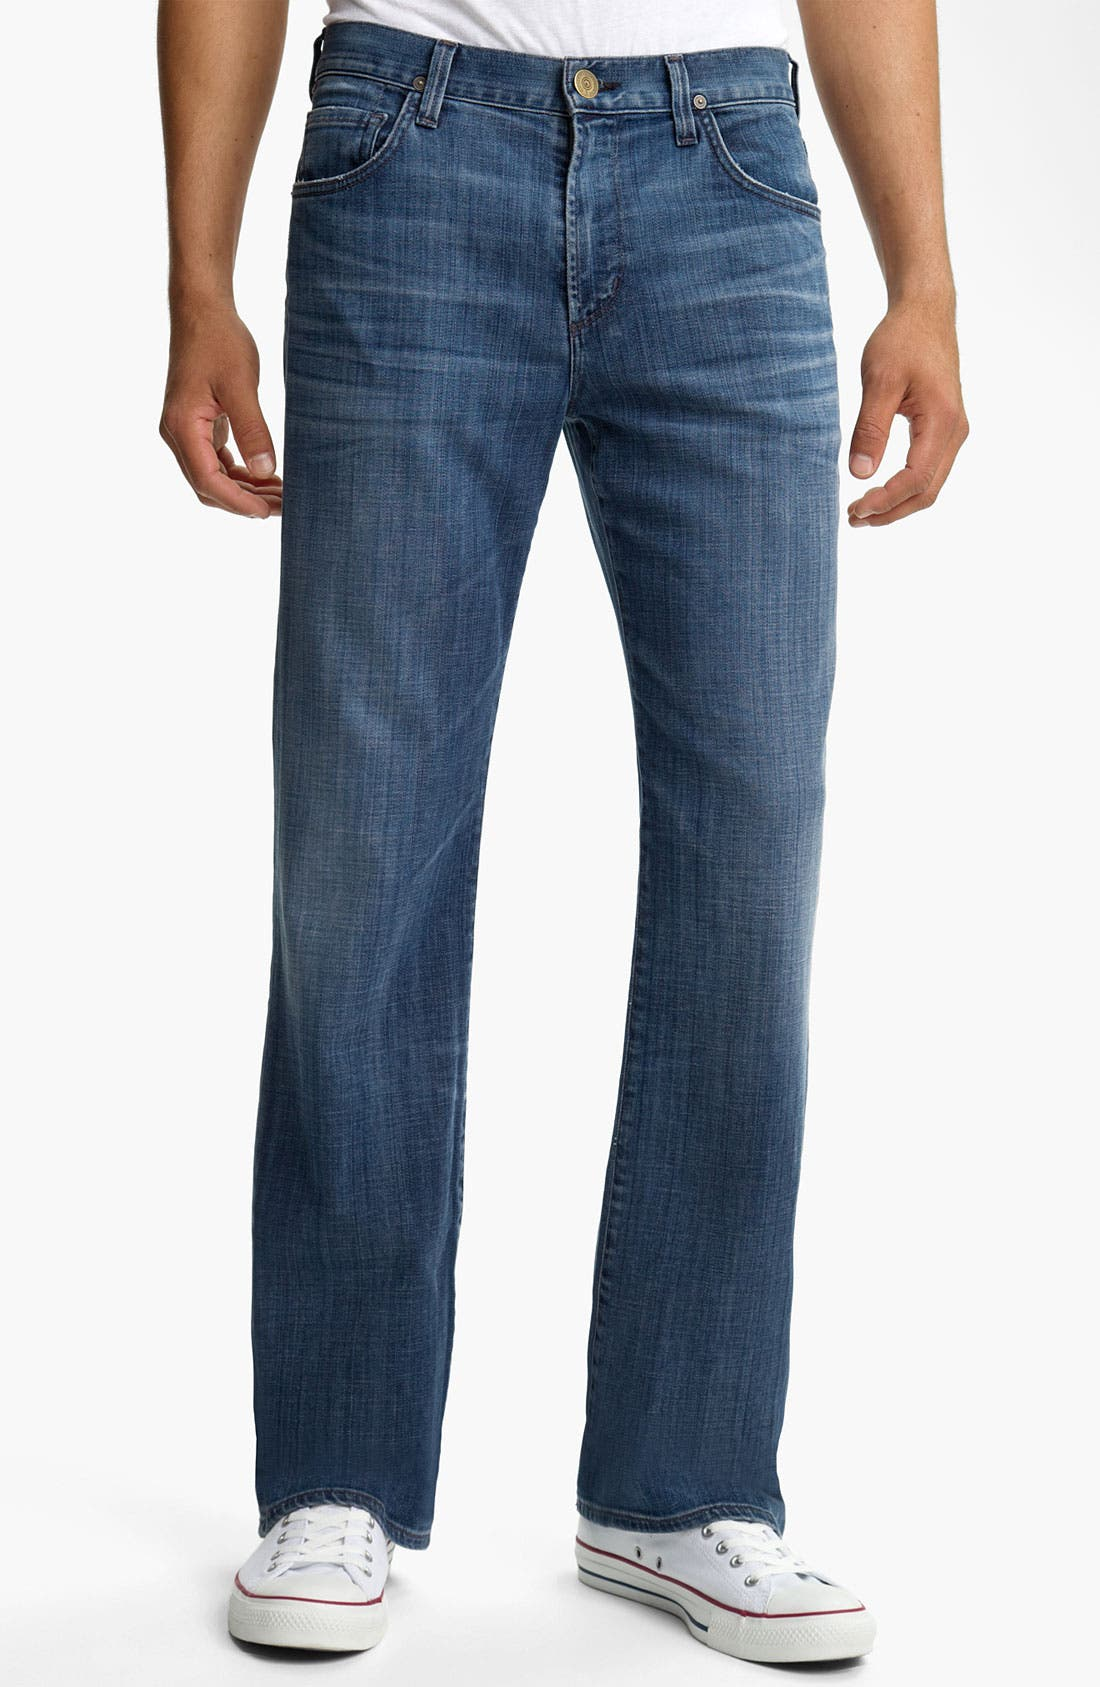 Main Image - Citizens of Humanity 'Jagger' Bootcut Jeans (Cosmo)